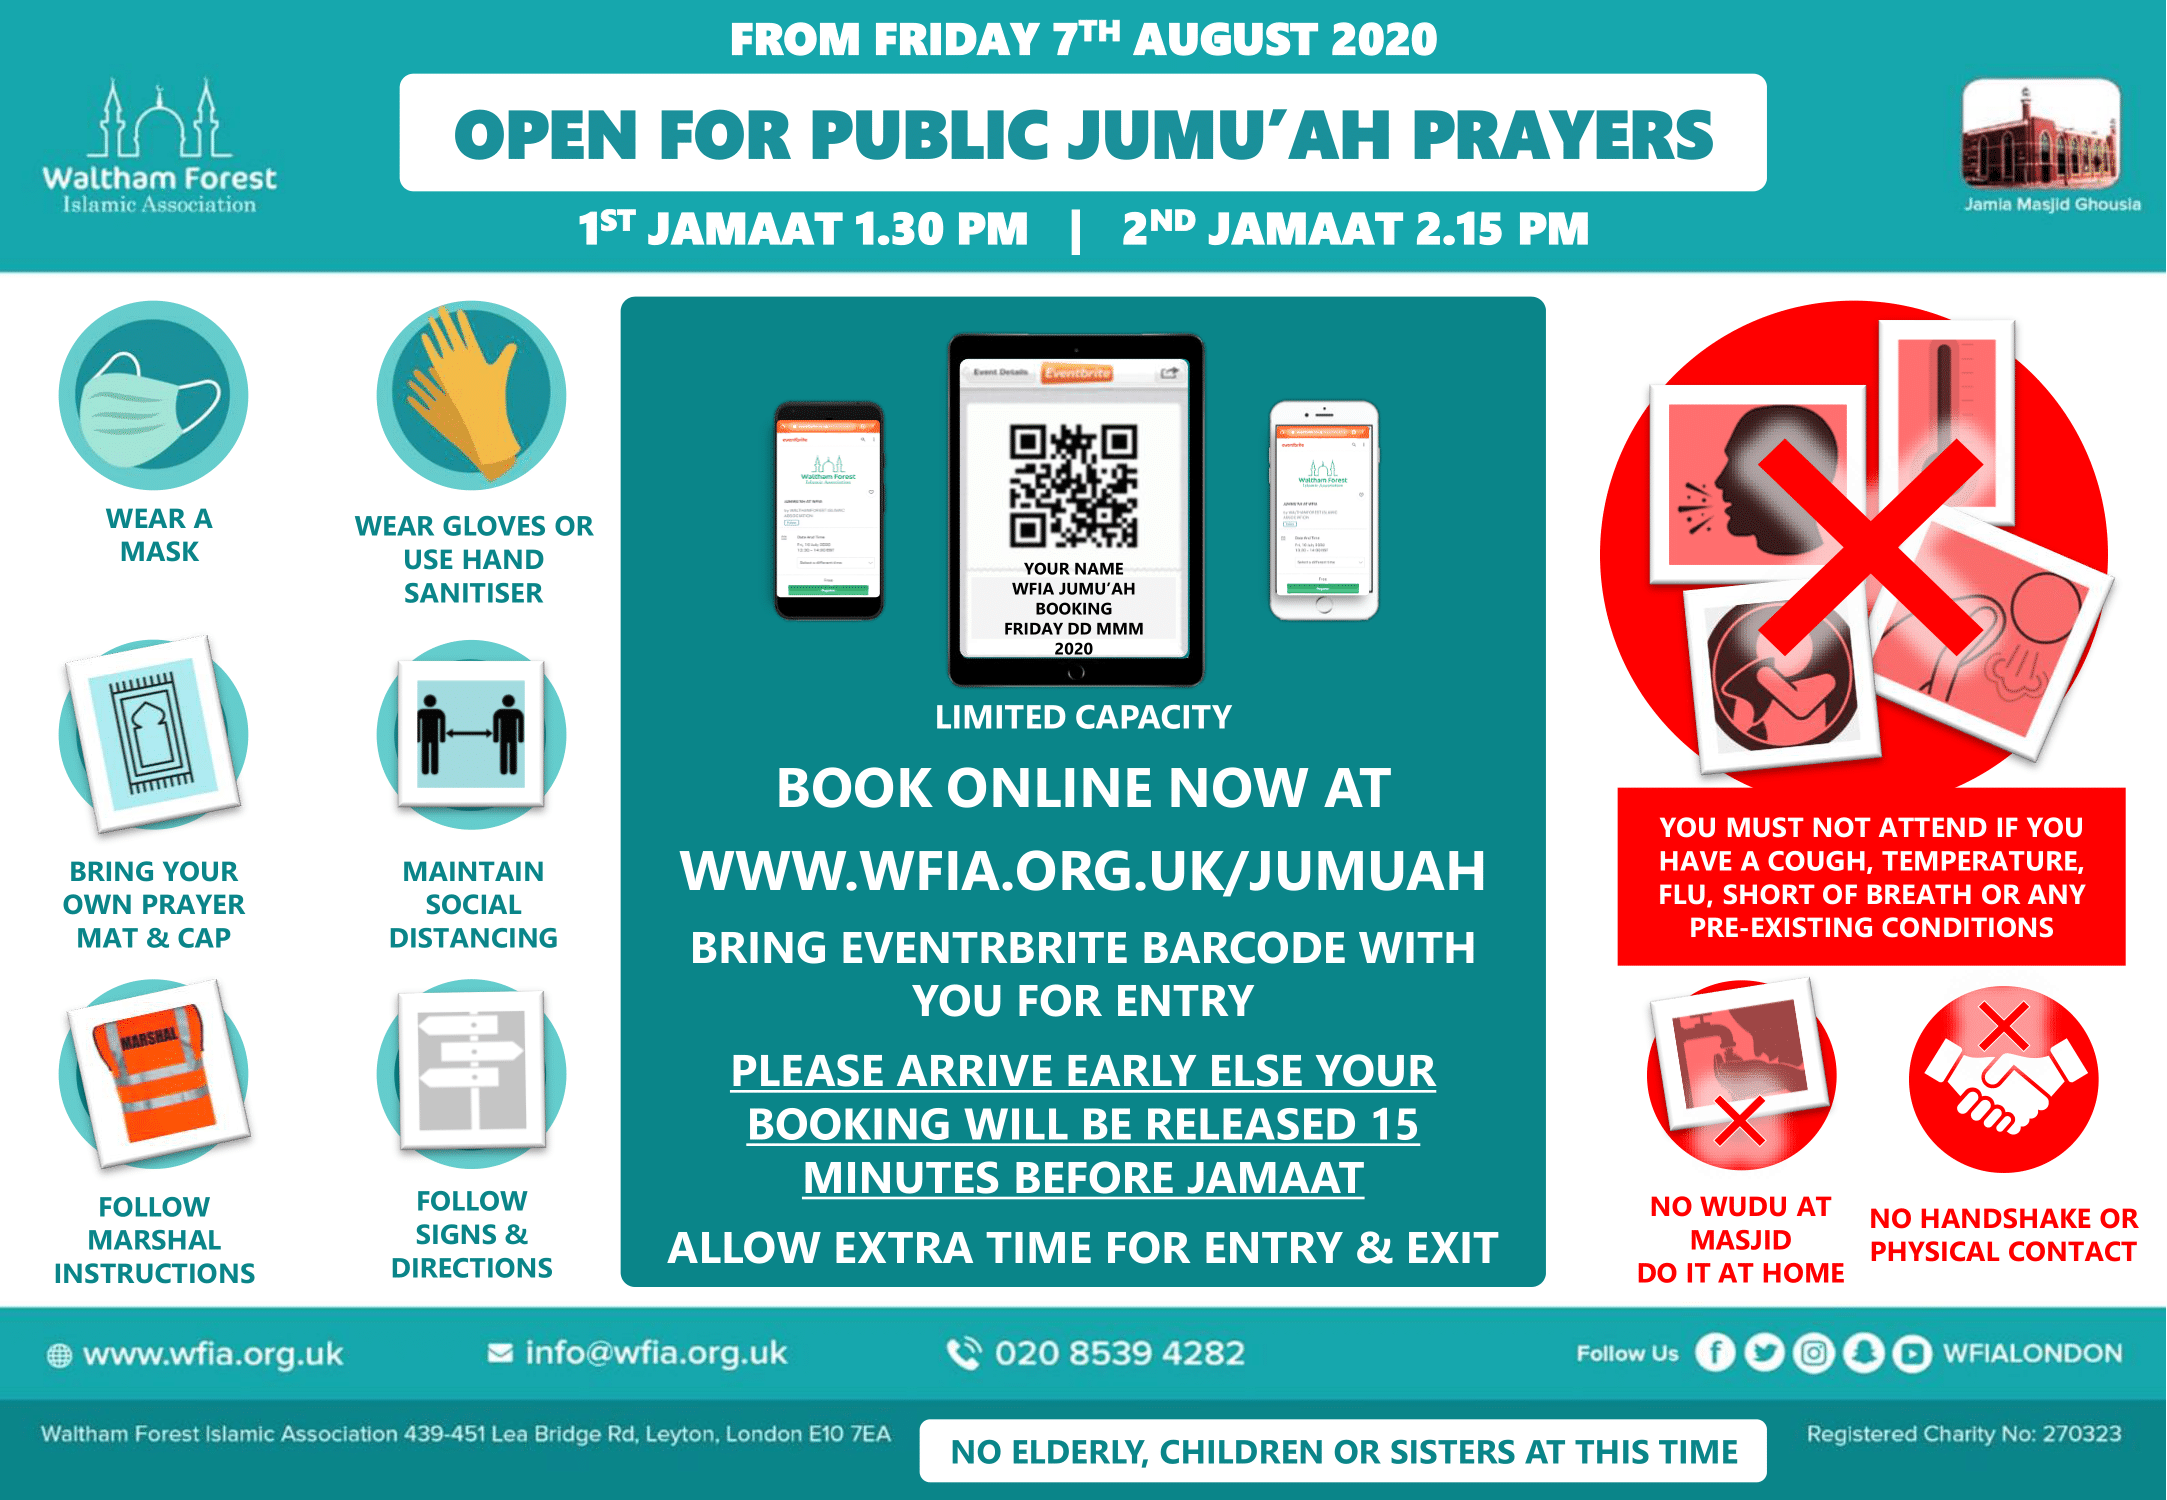 Masjid Re-opens for Jumu'ah Prayers